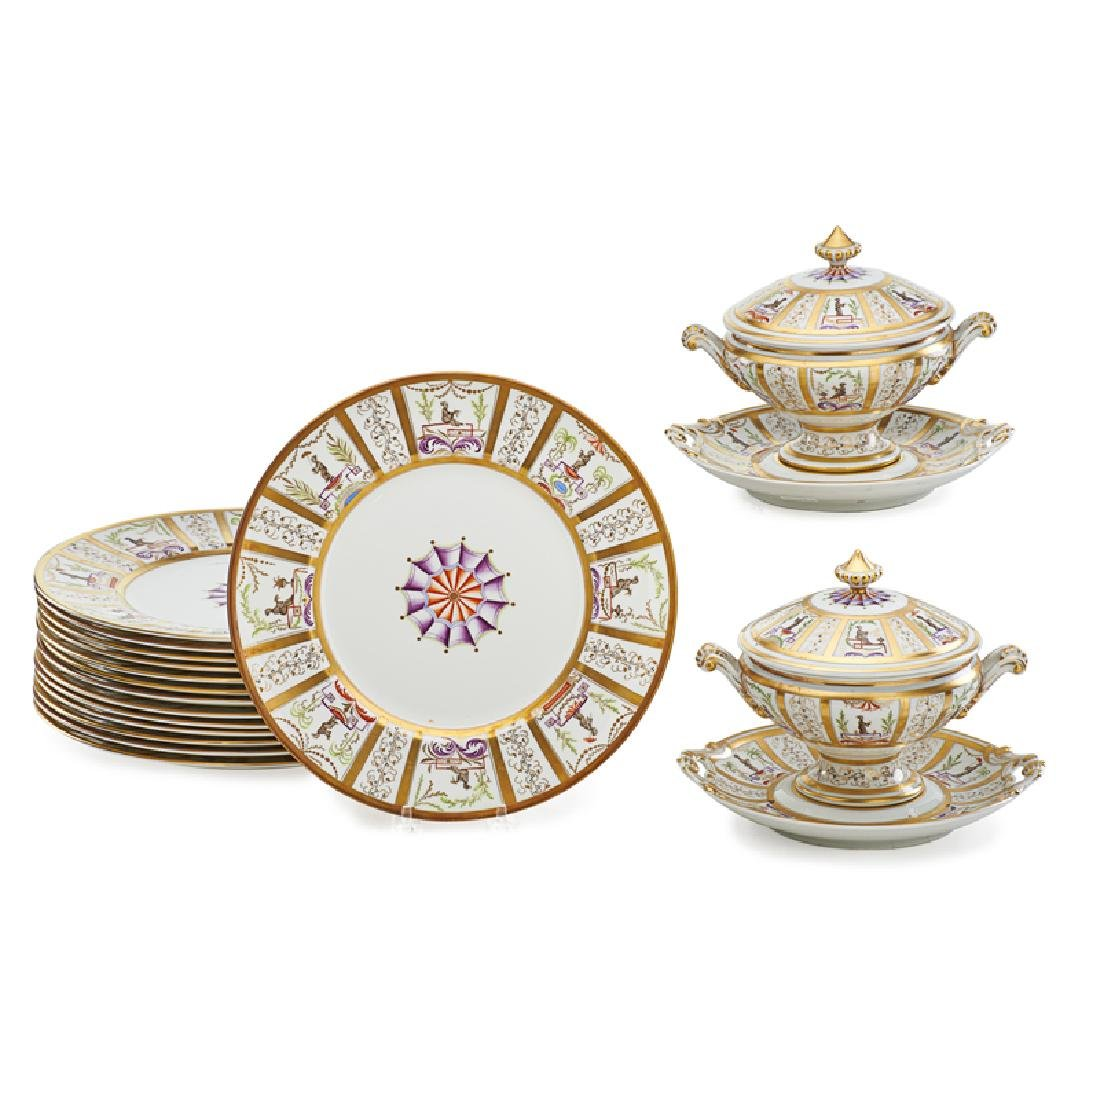 LE TALLEC LIMOGES FOR TIFFANY & CO. PORCELAIN...